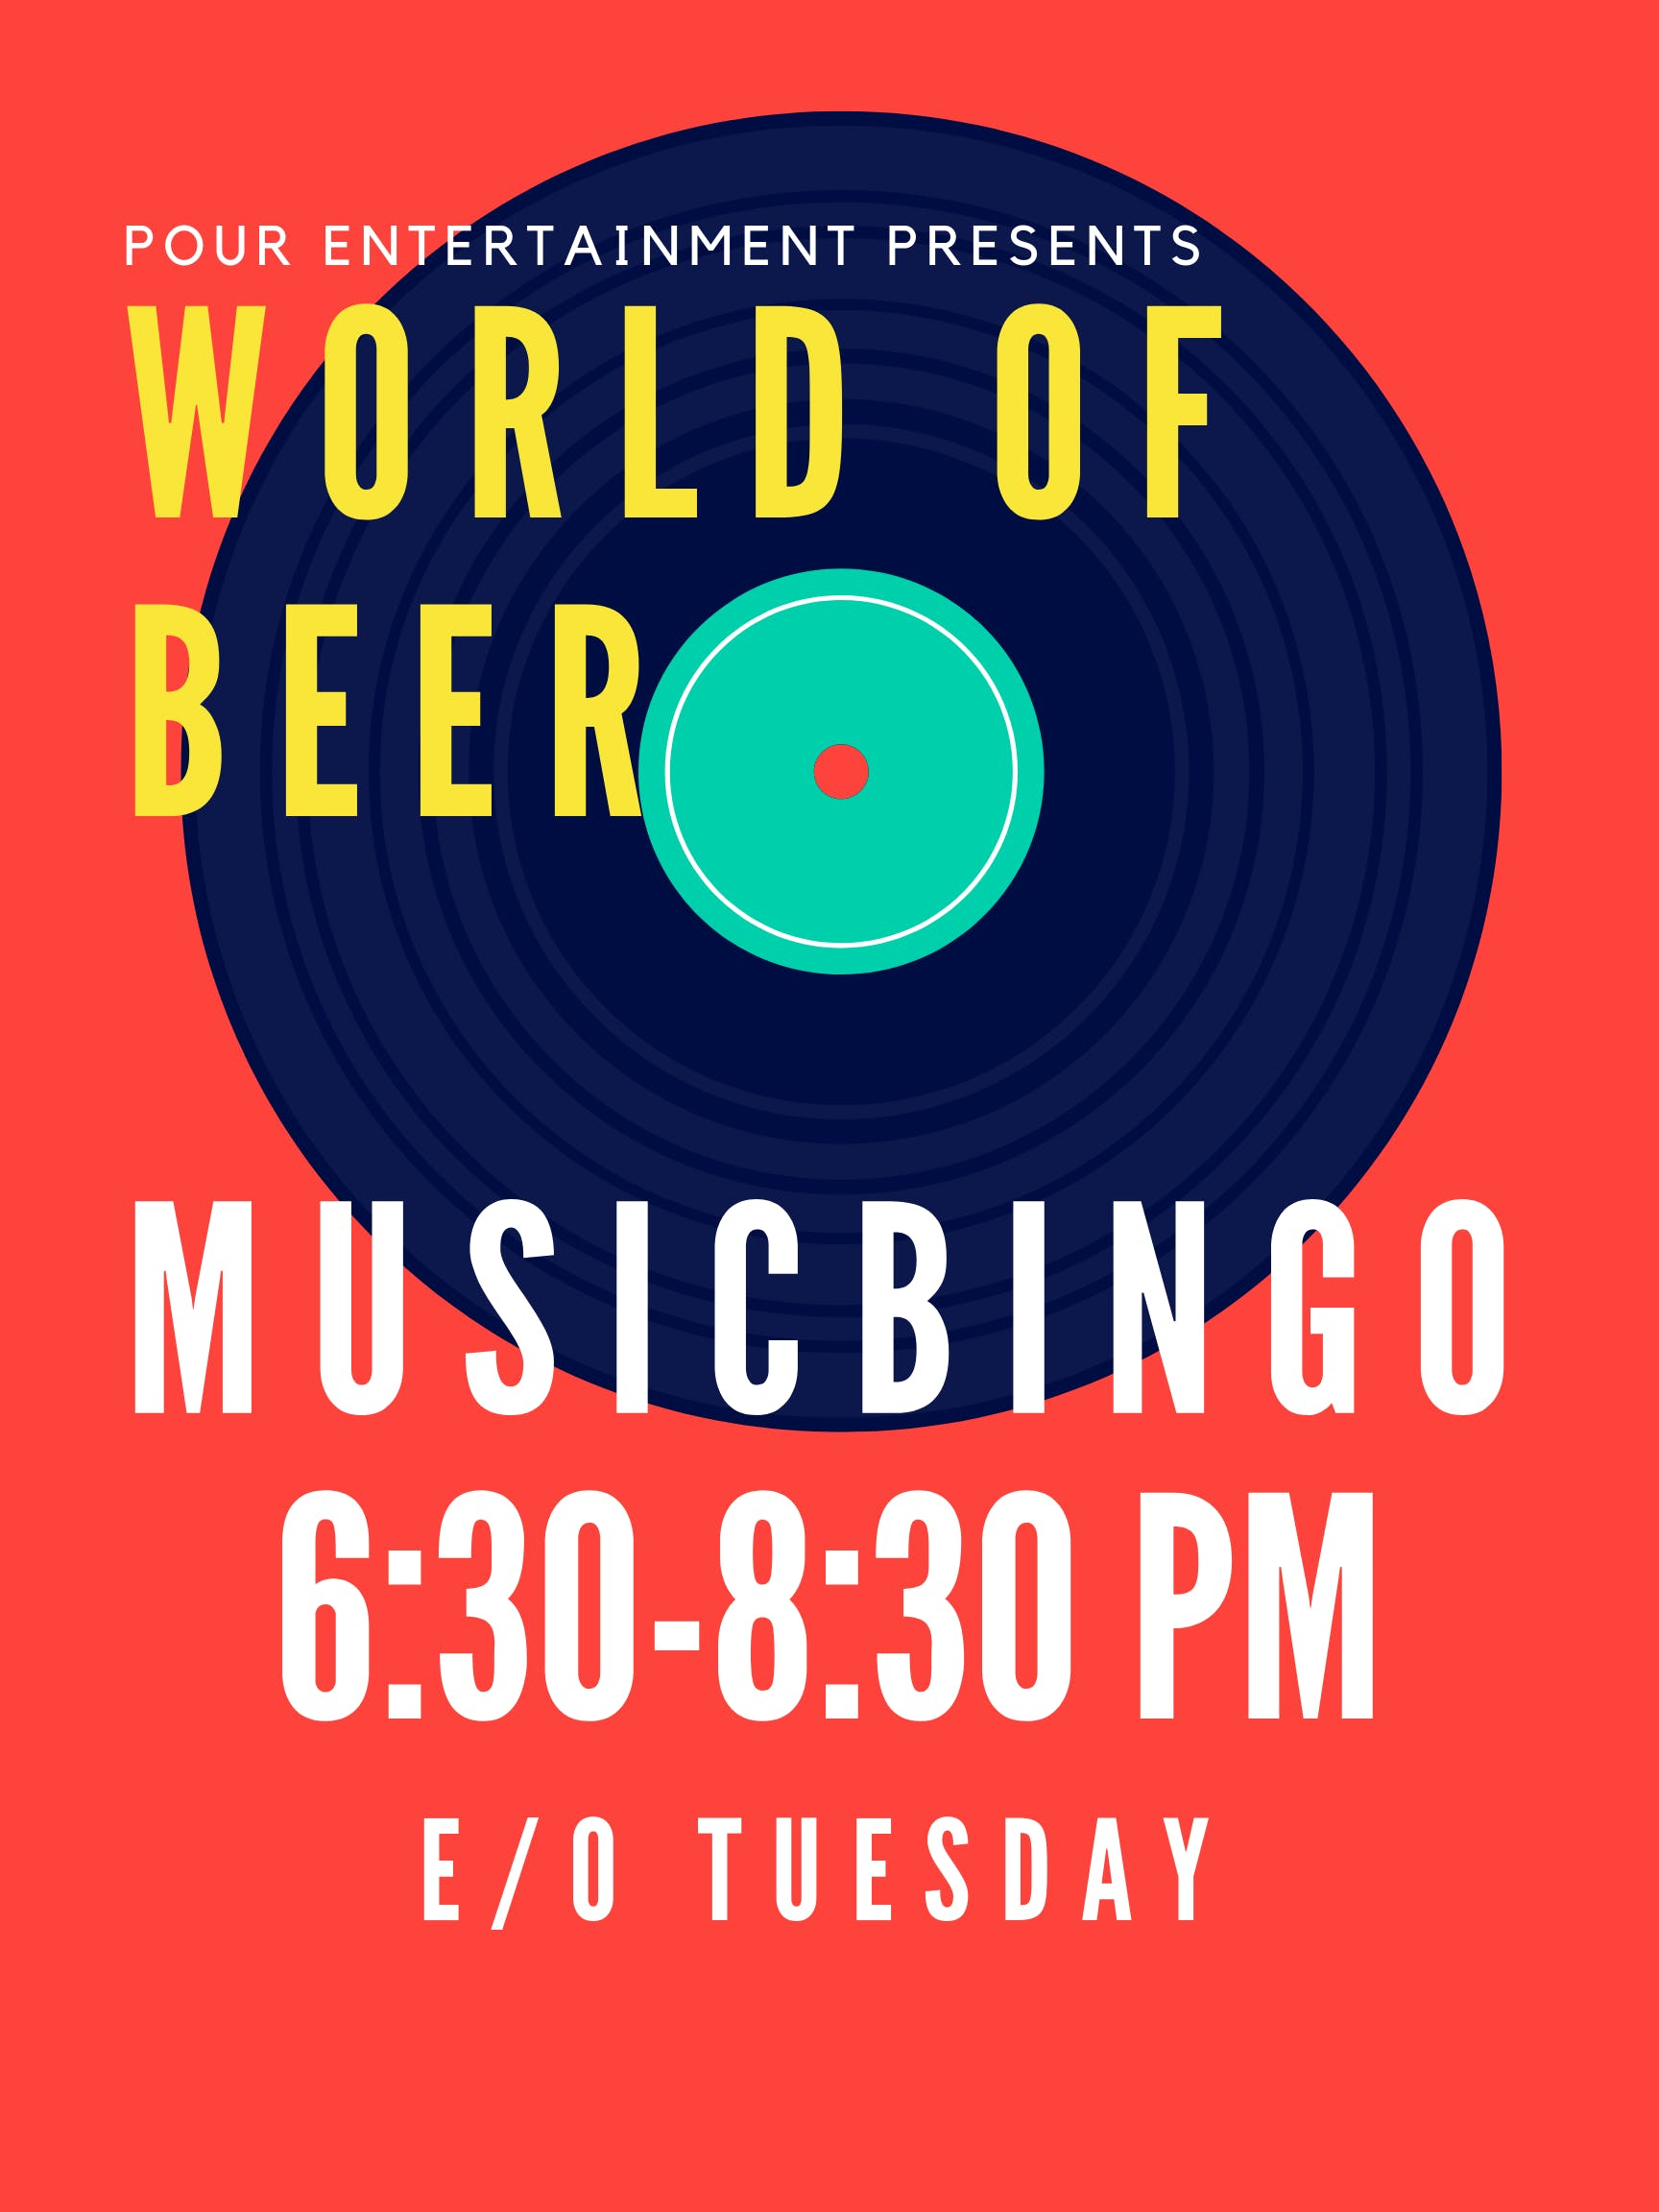 MUSIC BINGO at WORLD OF BEER - EPICENTER